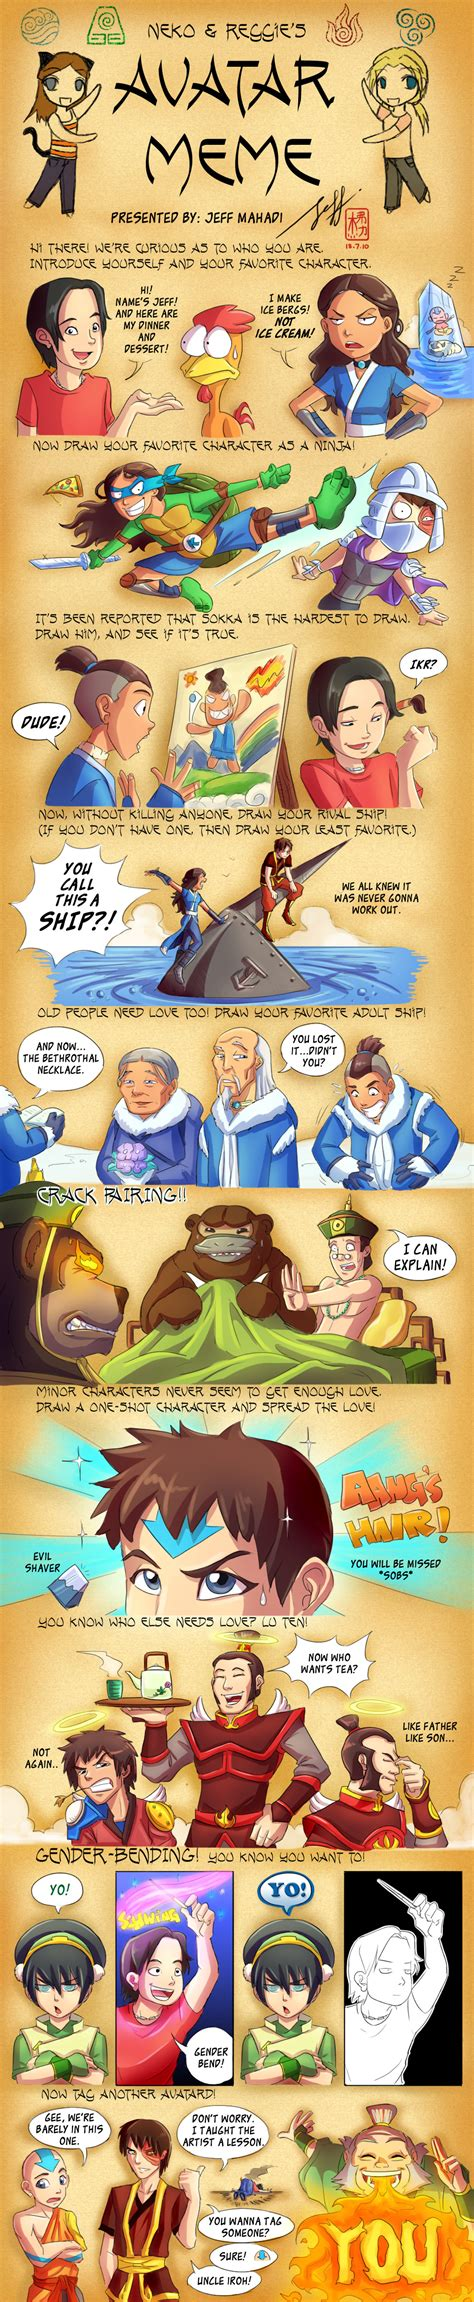 Avatar The Last Airbender Memes - avatar the last airbender meme by jeff mahadi on deviantart